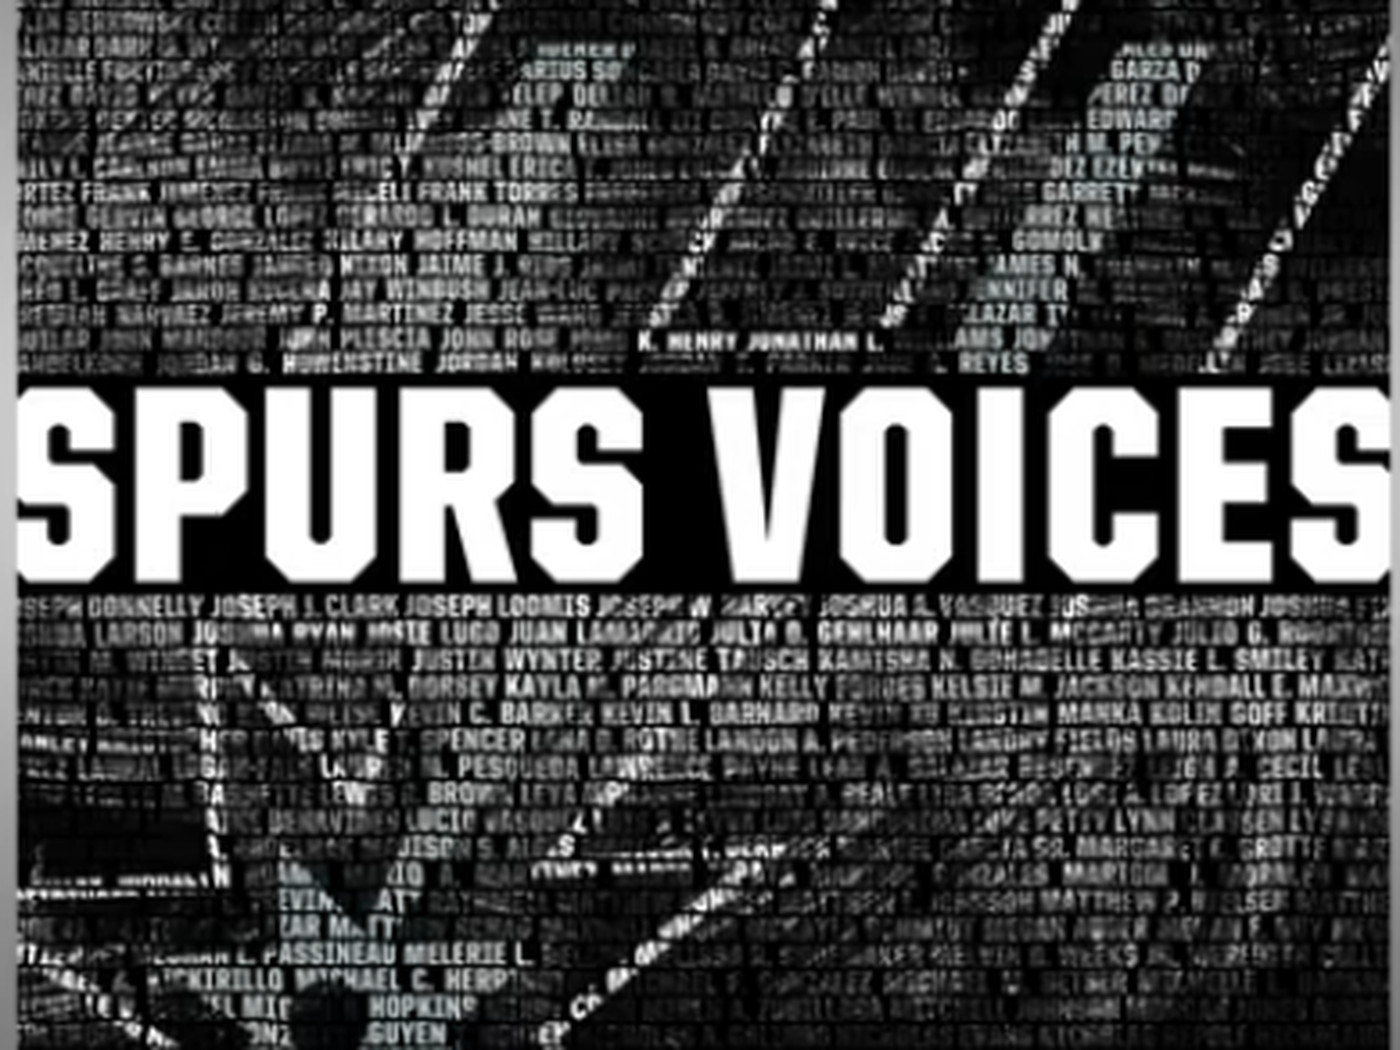 Spurs Voices With Brian Wright Pounding The Rock